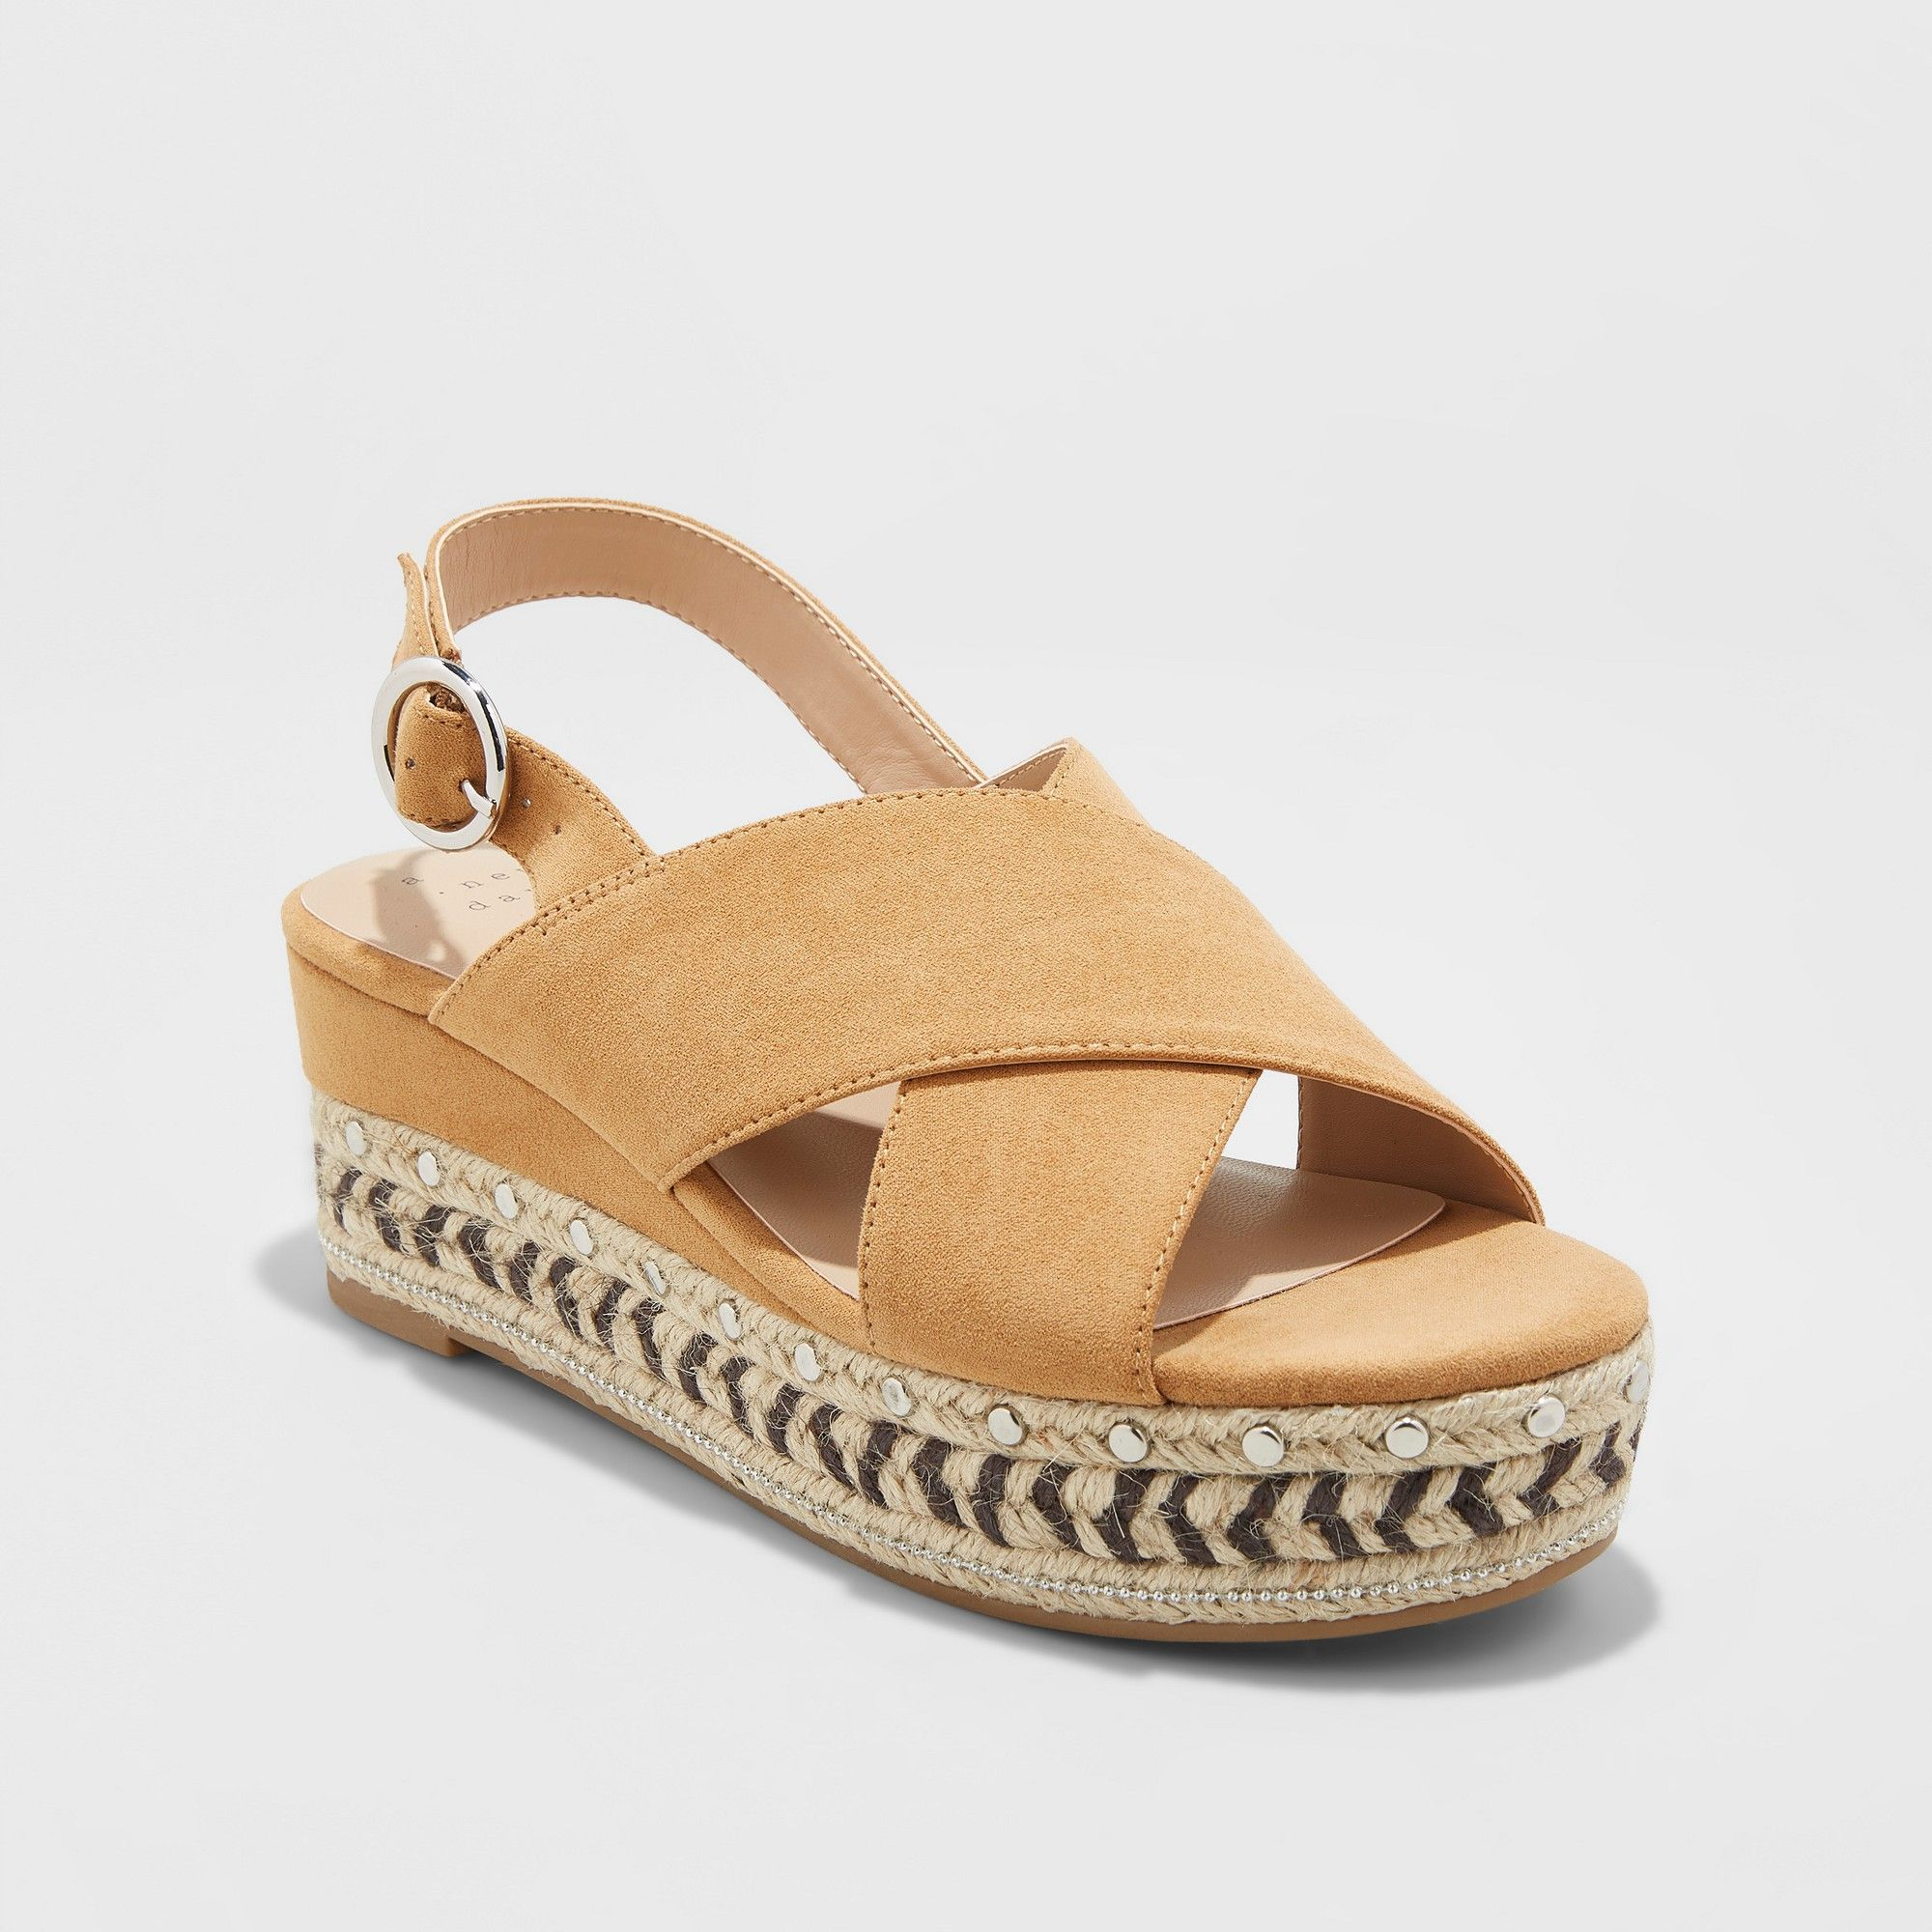 19f52182895 Women s Trista Mixed Media Wedge Espadrille - A New Day Tan 8.5 ...